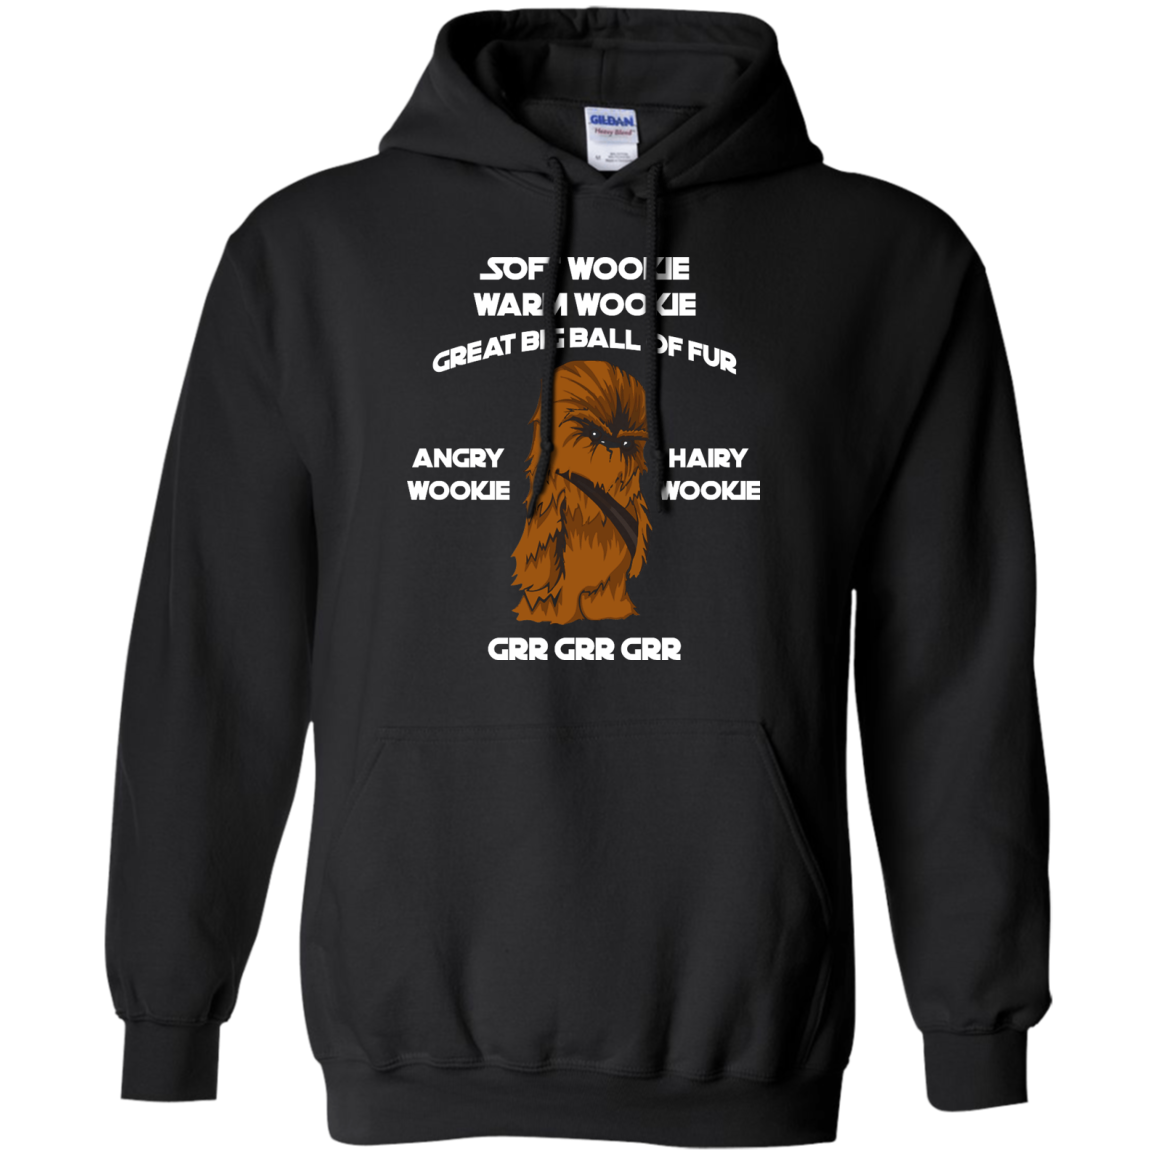 image 41px Star Wars: Soft Wookie Warm Wookie Great Big Ball Of Fur Angry Wookie Hairy Wookie T Shirts